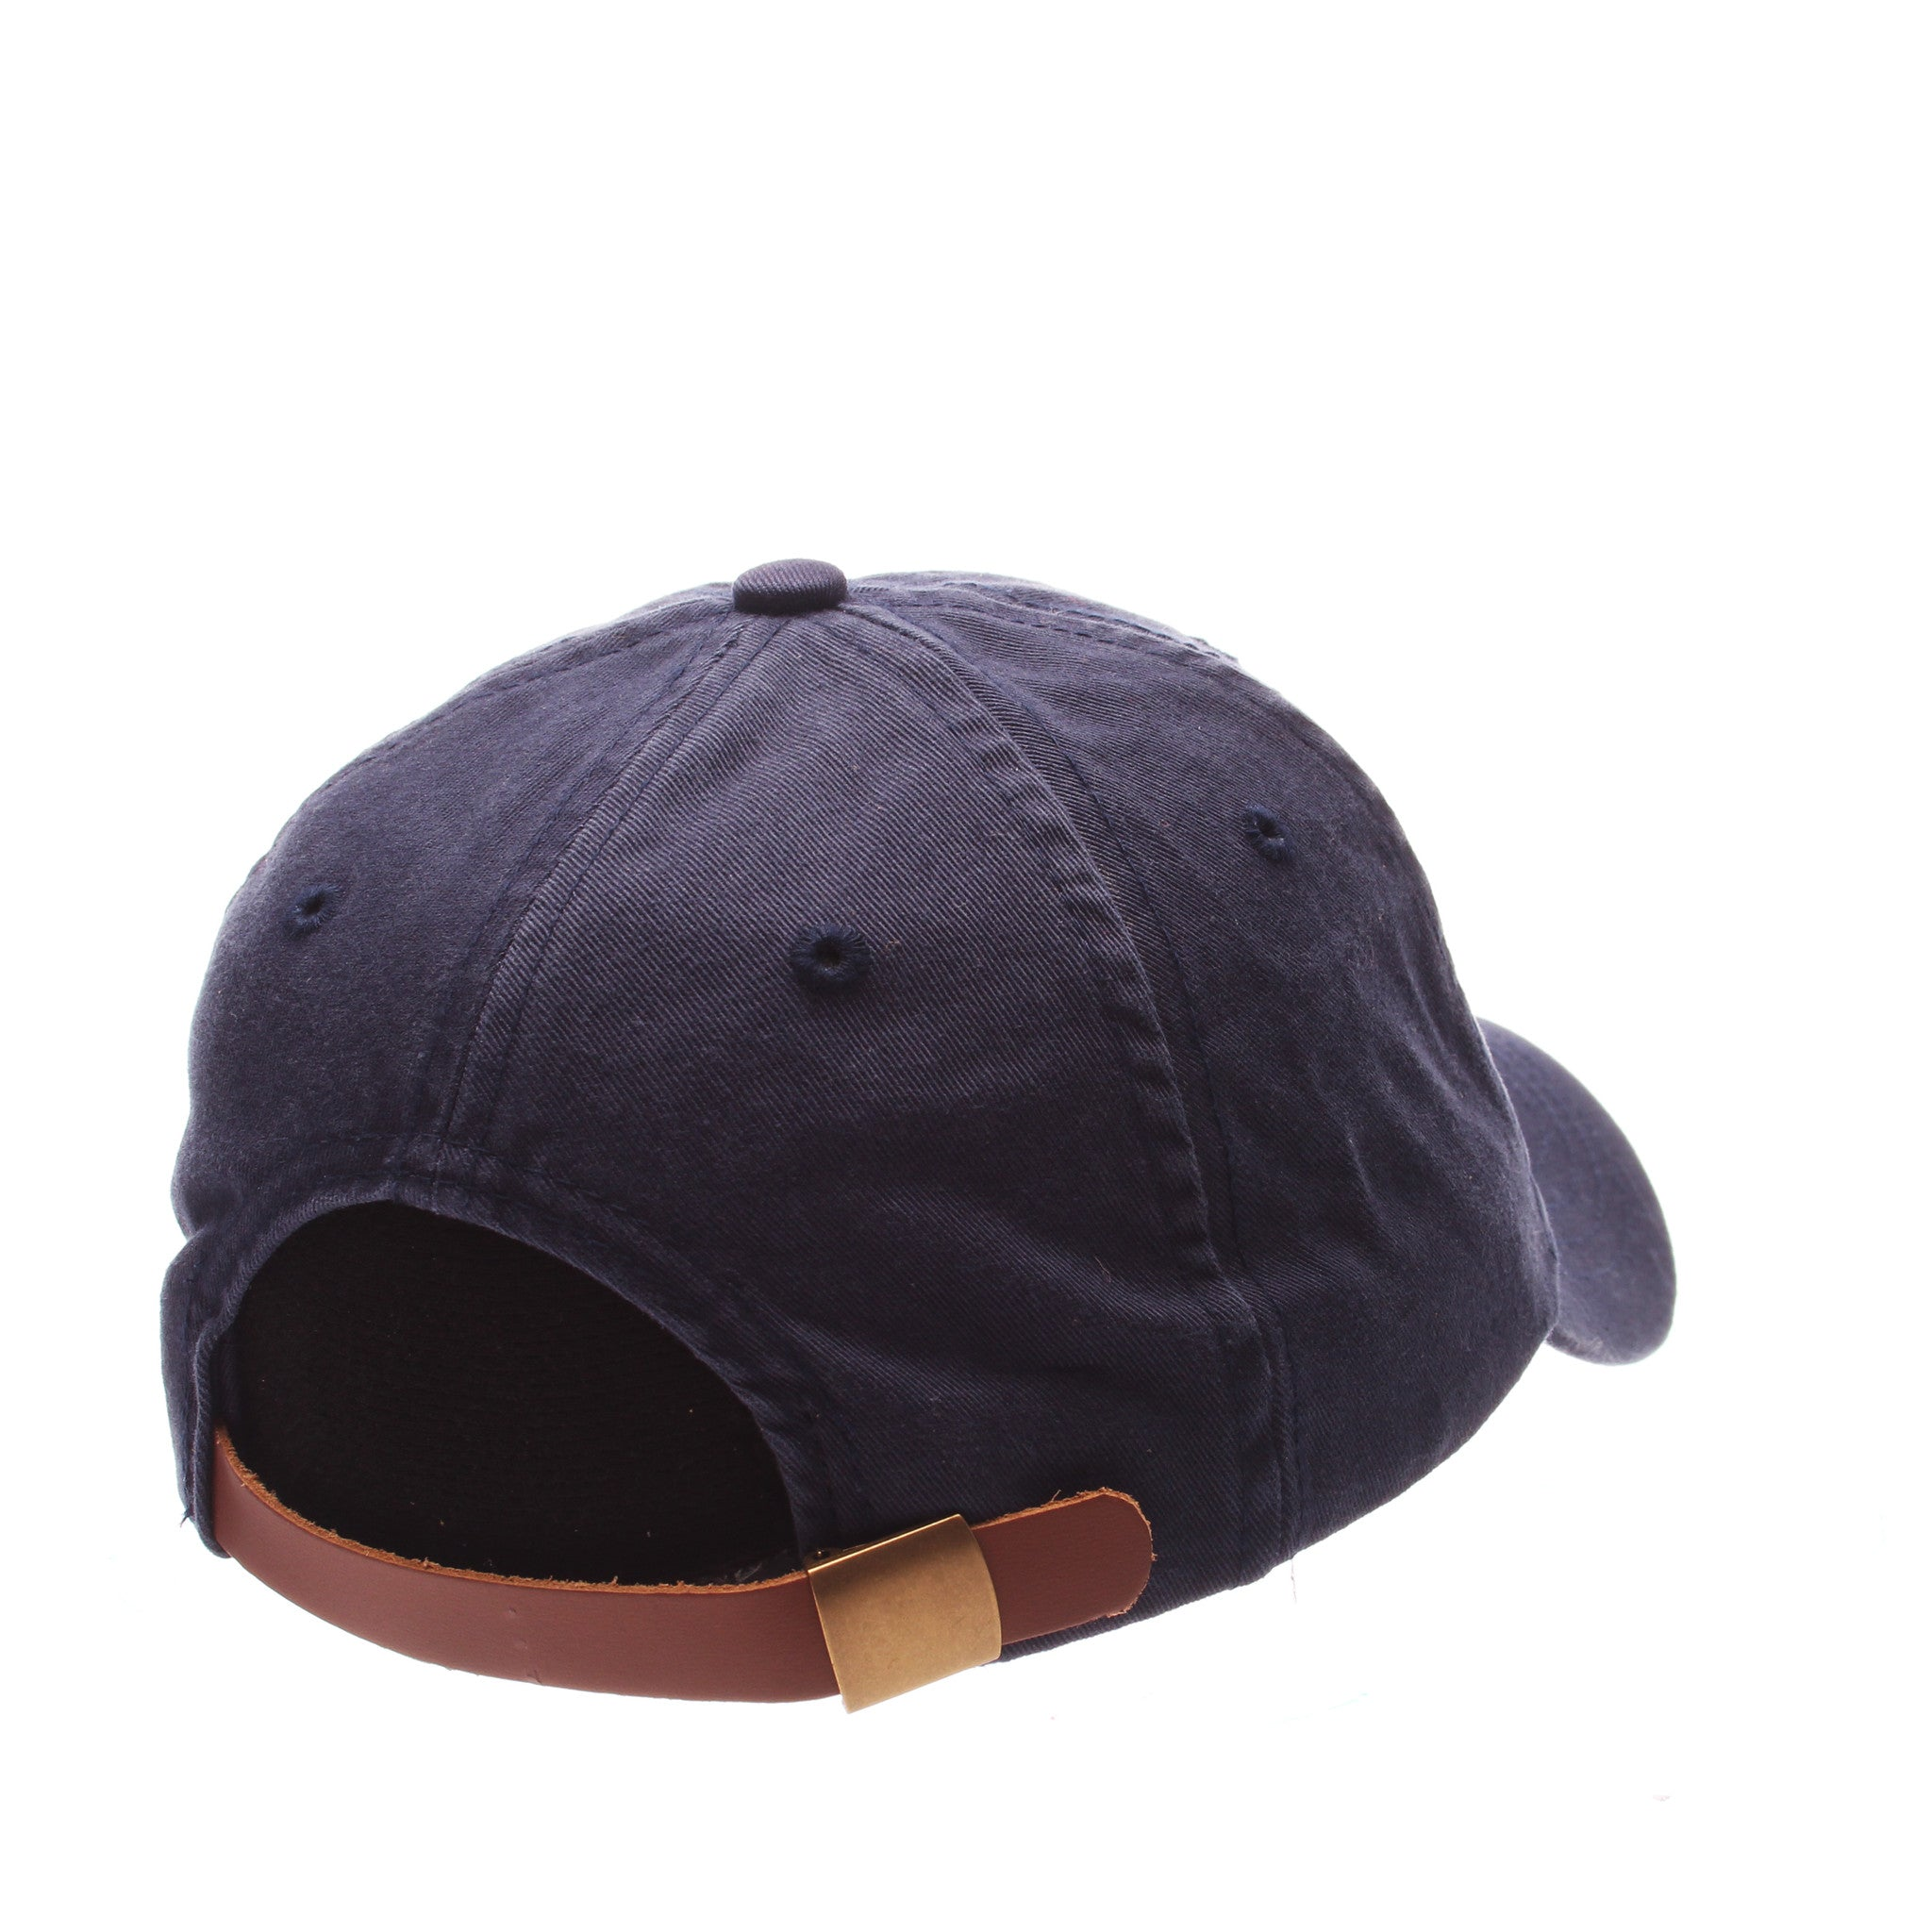 8c1534bbd7a4e Dad Hat (T REX) Navy Dark Washed Adjustable hats by Zephyr